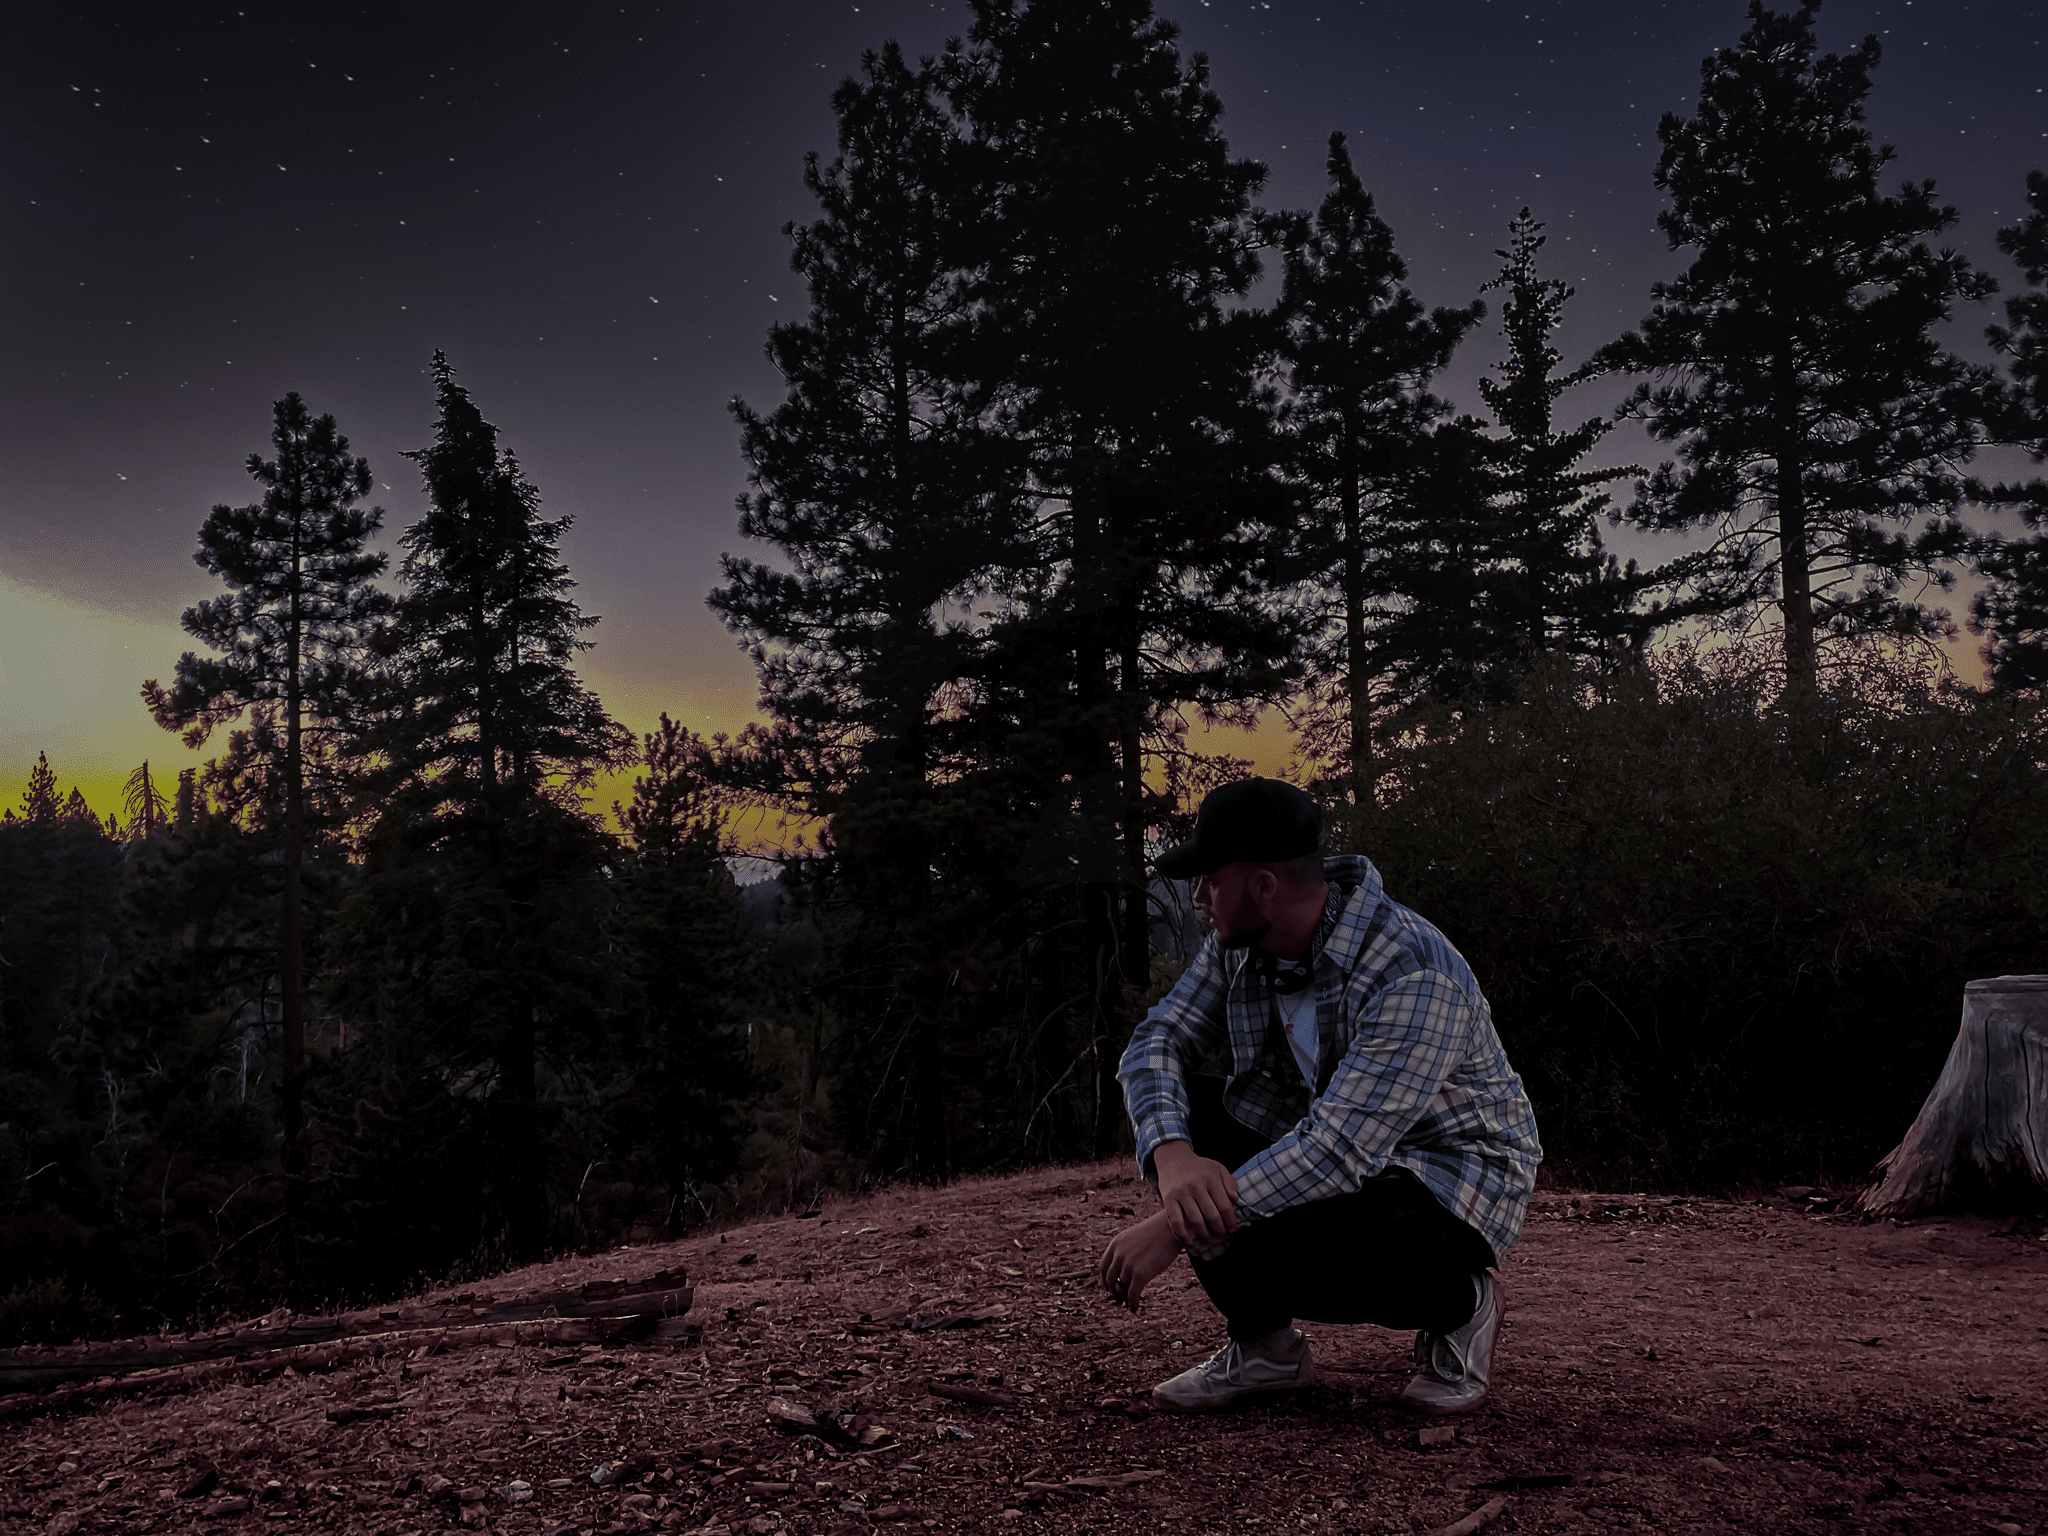 PREMIERE: Joey Capo releases new EP 'When Shooting Stars Listen'